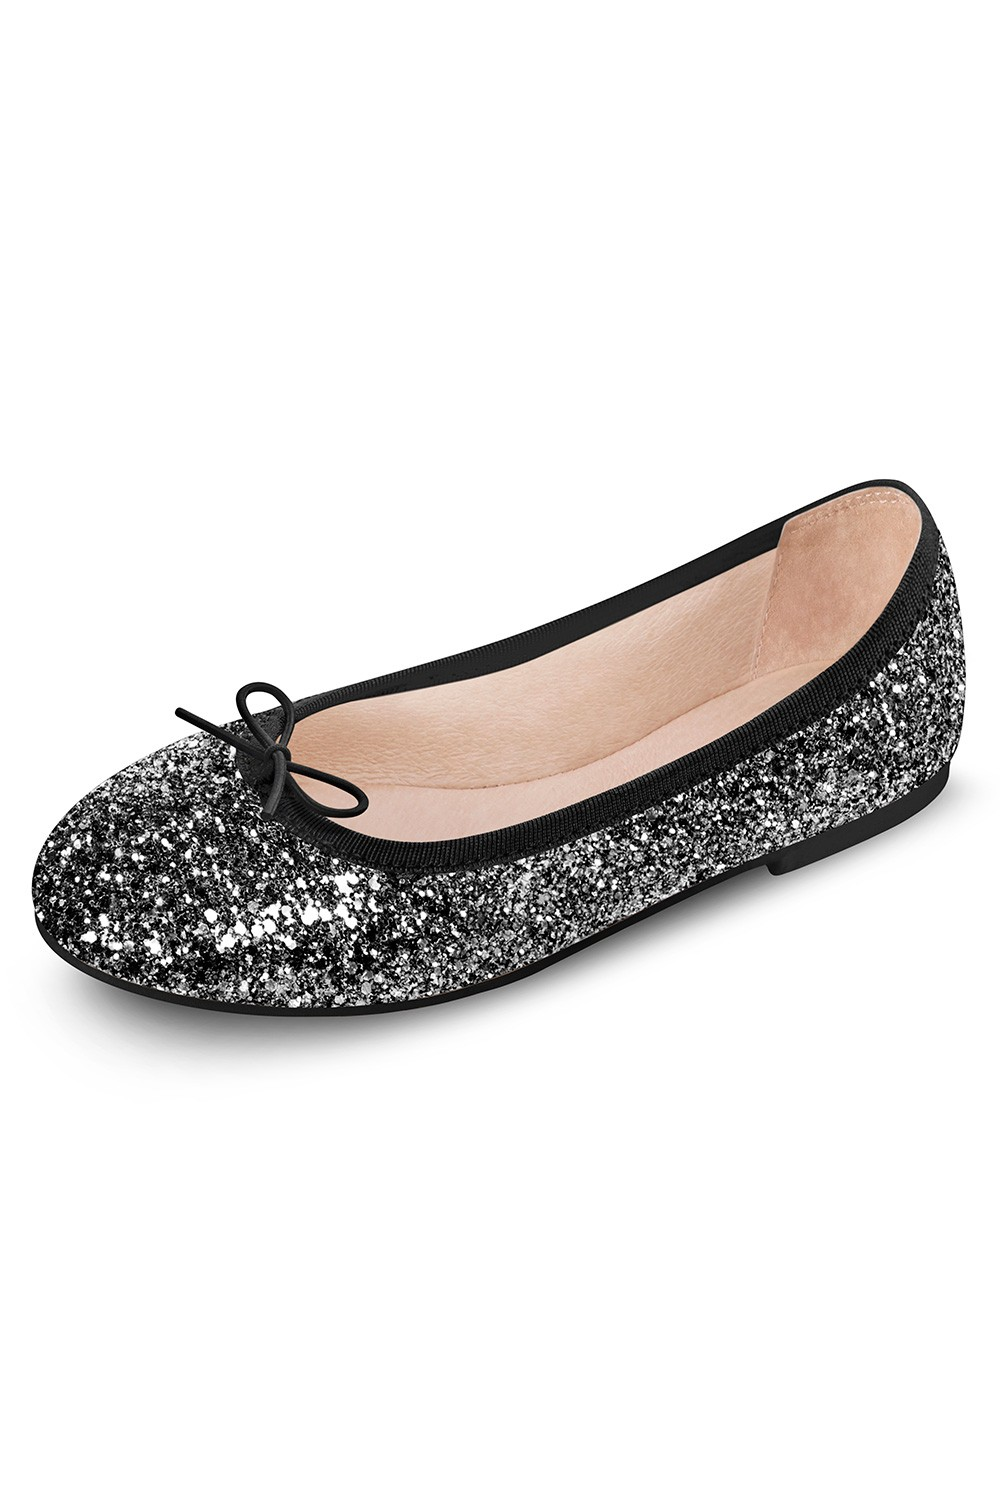 Sparkle - Teenager Girls Fashion Shoes